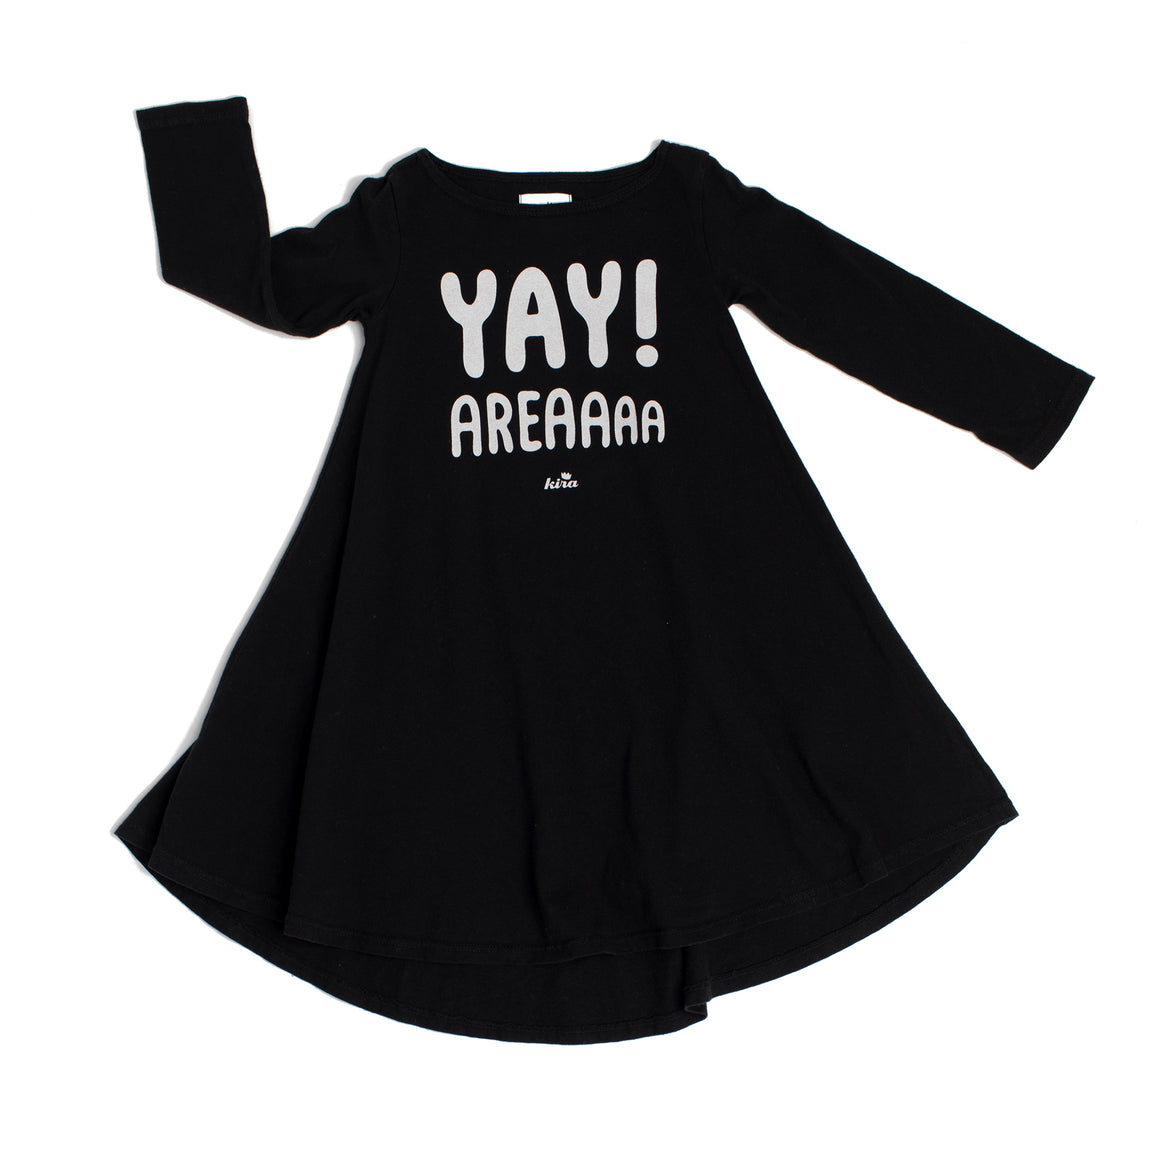 Yay Area Graphic T-shirt Dress, Black